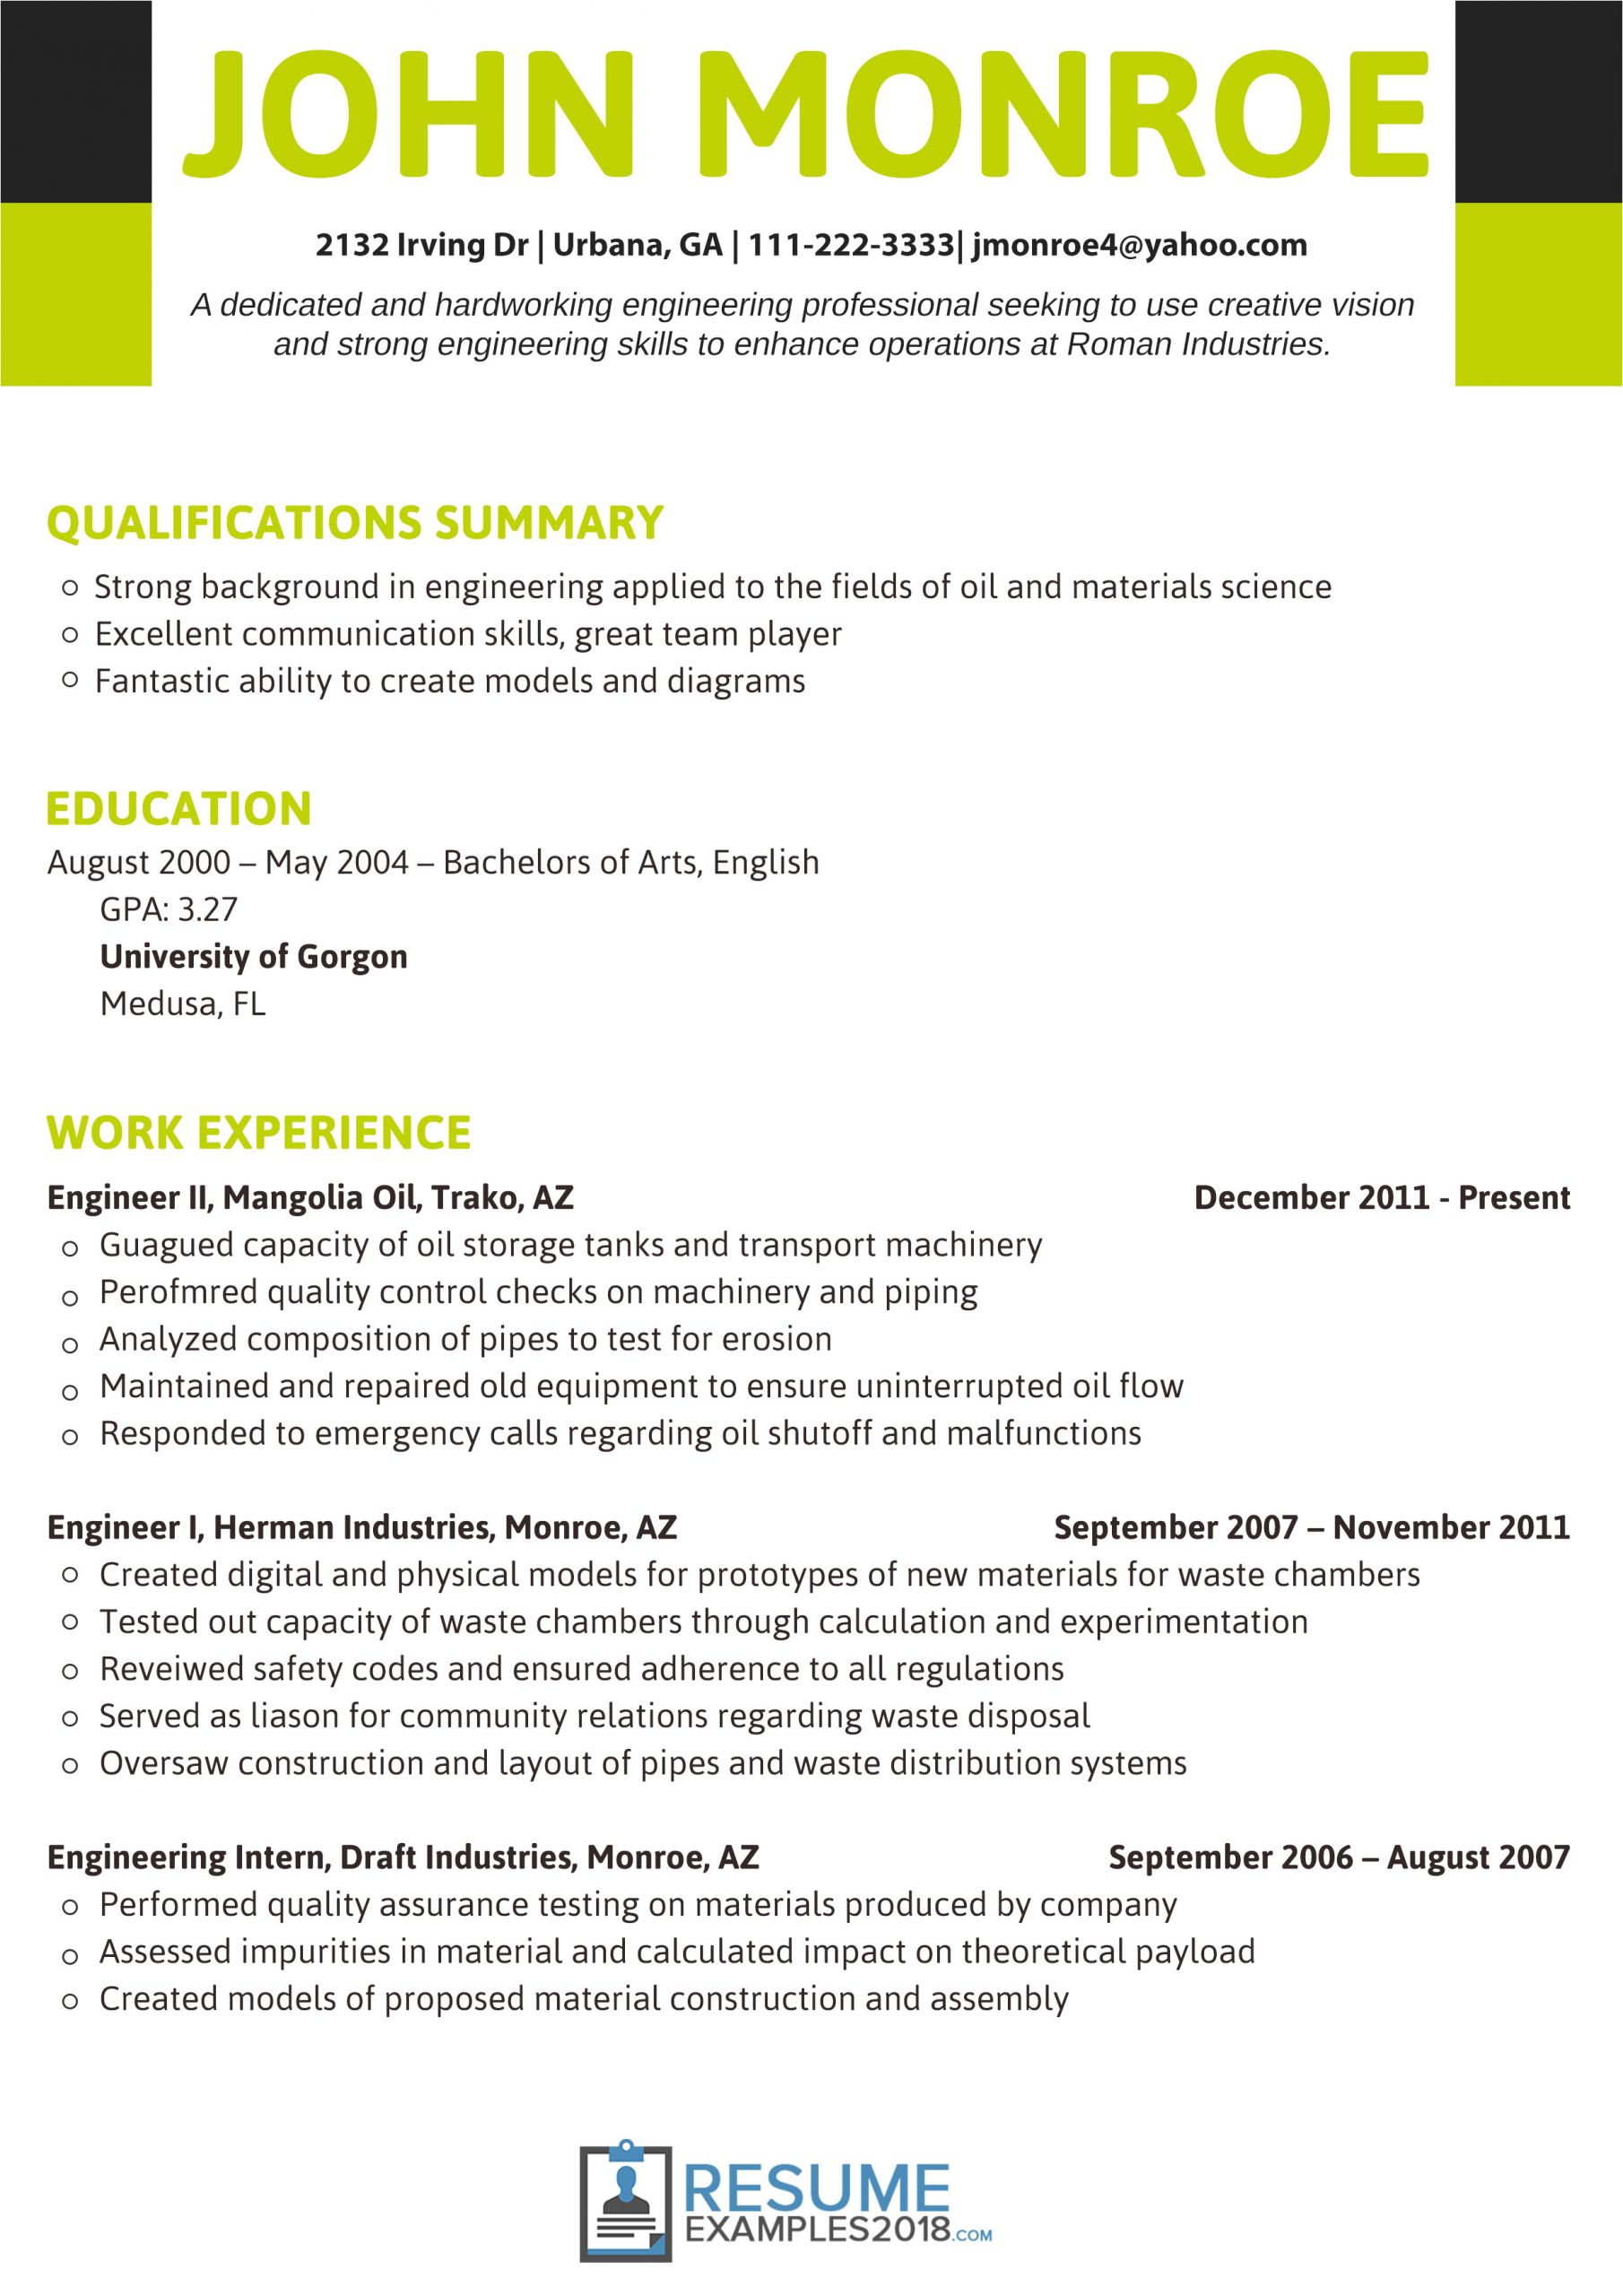 Engineering Resume Examples 2018 Best Engineering Resume Examples 2019 that Land You A Job